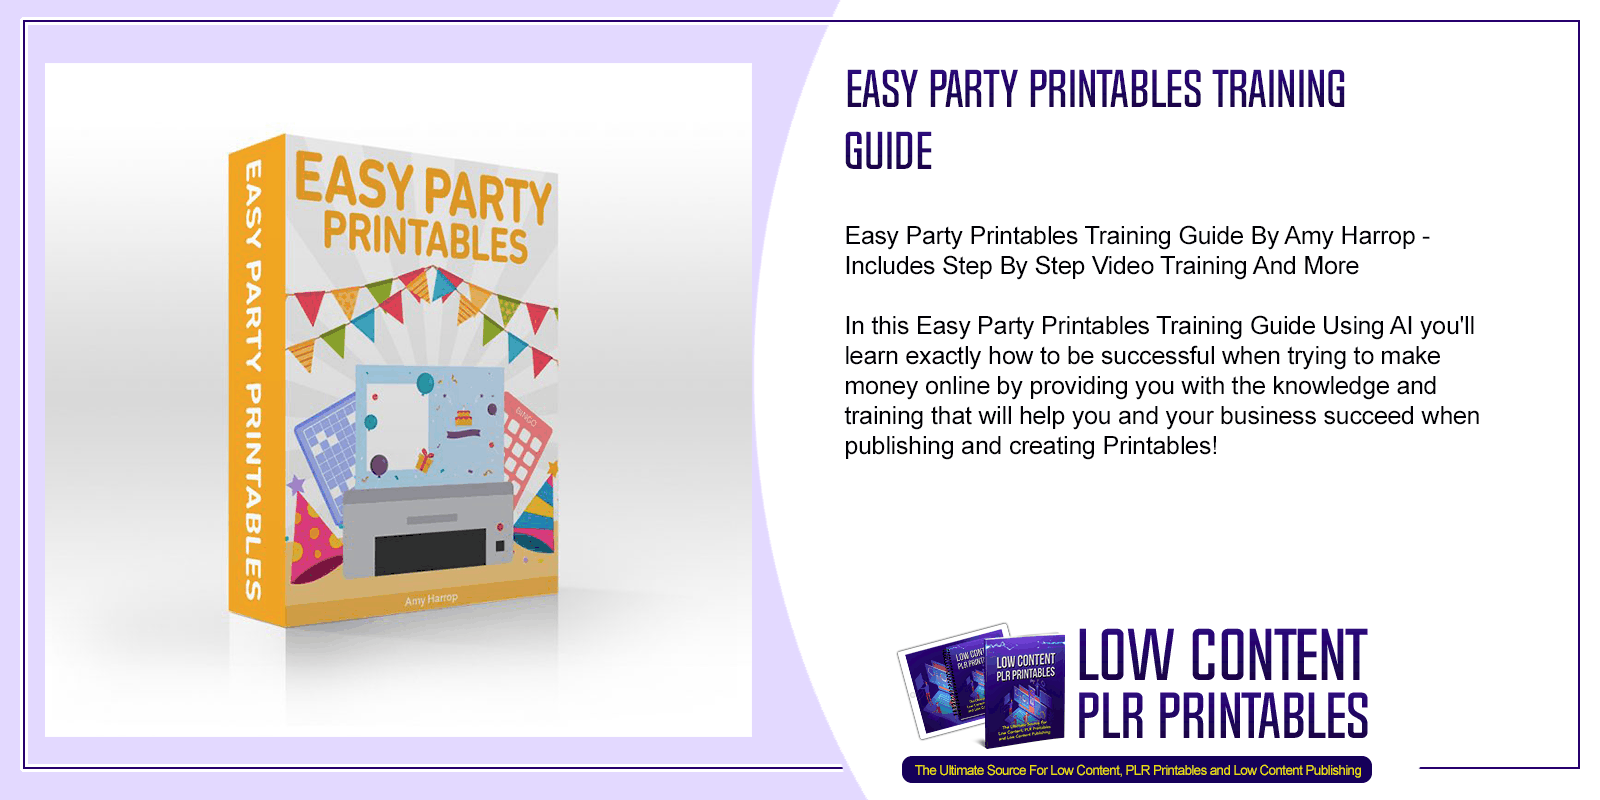 Easy Party Printables Training Guide